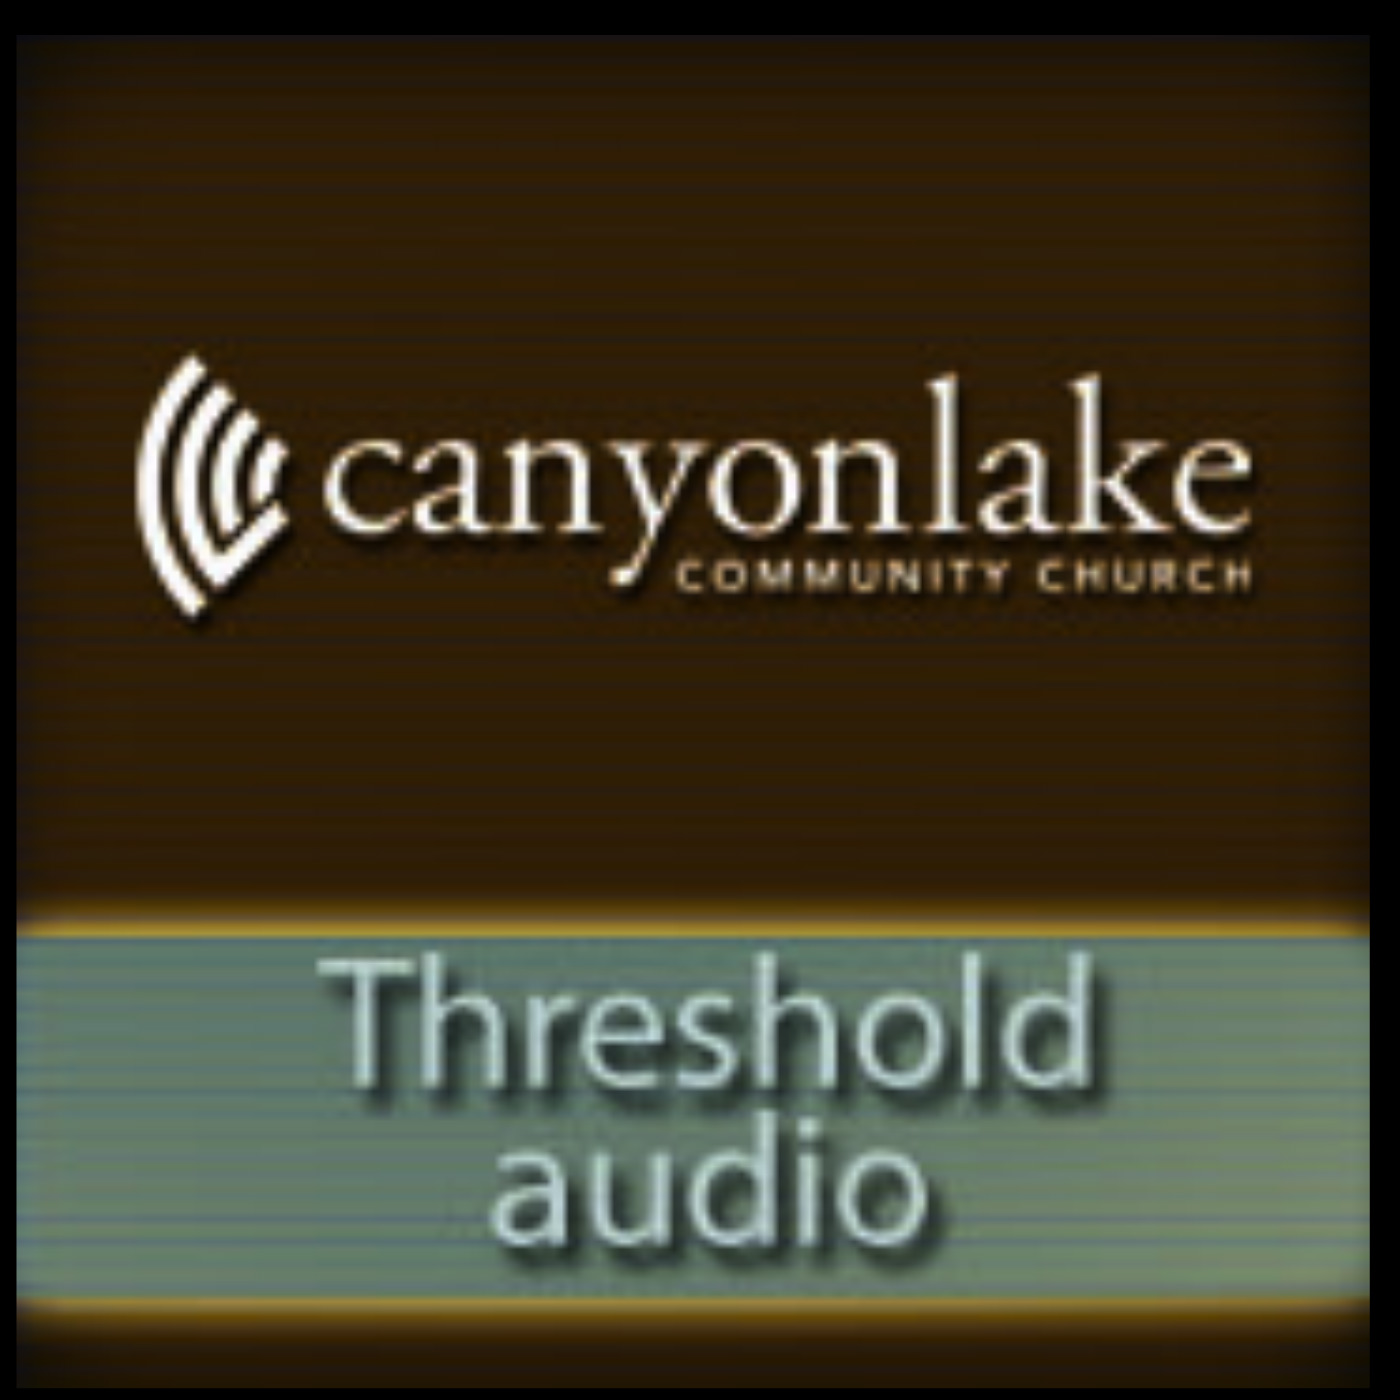 Canyon Lake Community Church Threshold